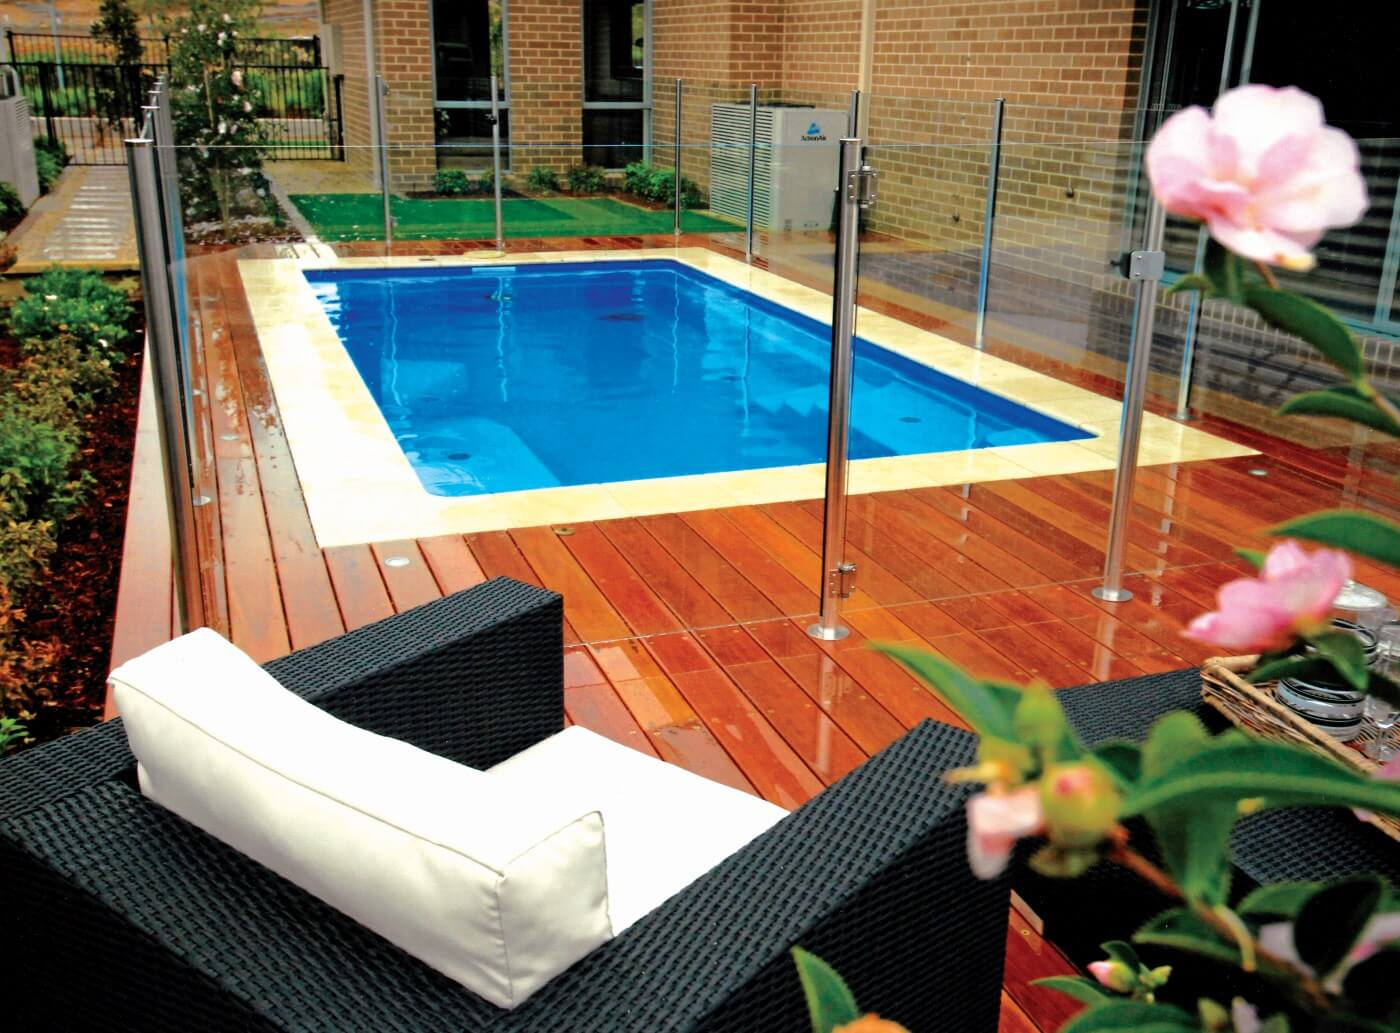 The Best Pool Design Ideas For Your Backyard Compass Pools Australia with regard to 15 Clever Ways How to Upgrade Swimming Pool Ideas For Backyard